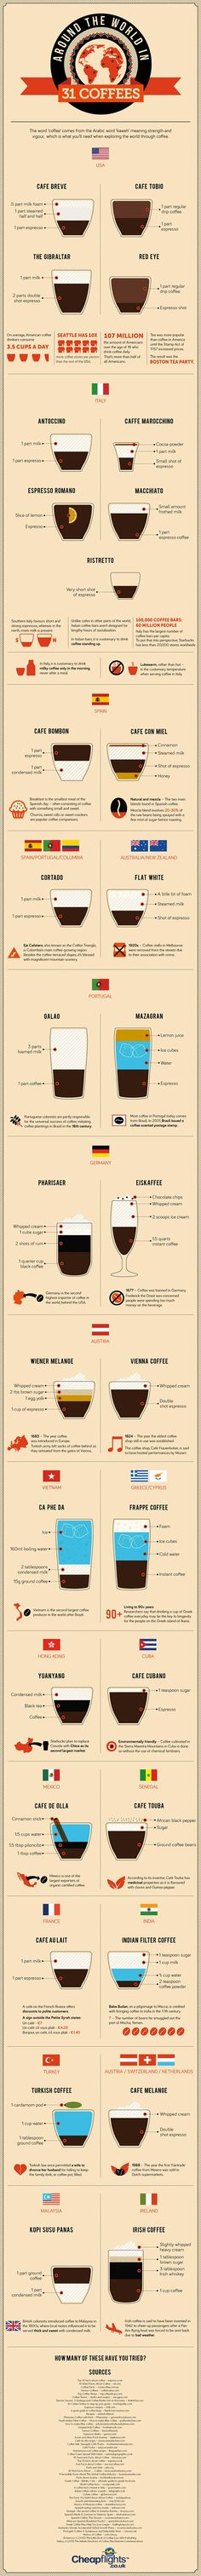 How to Order Coffee Around the World